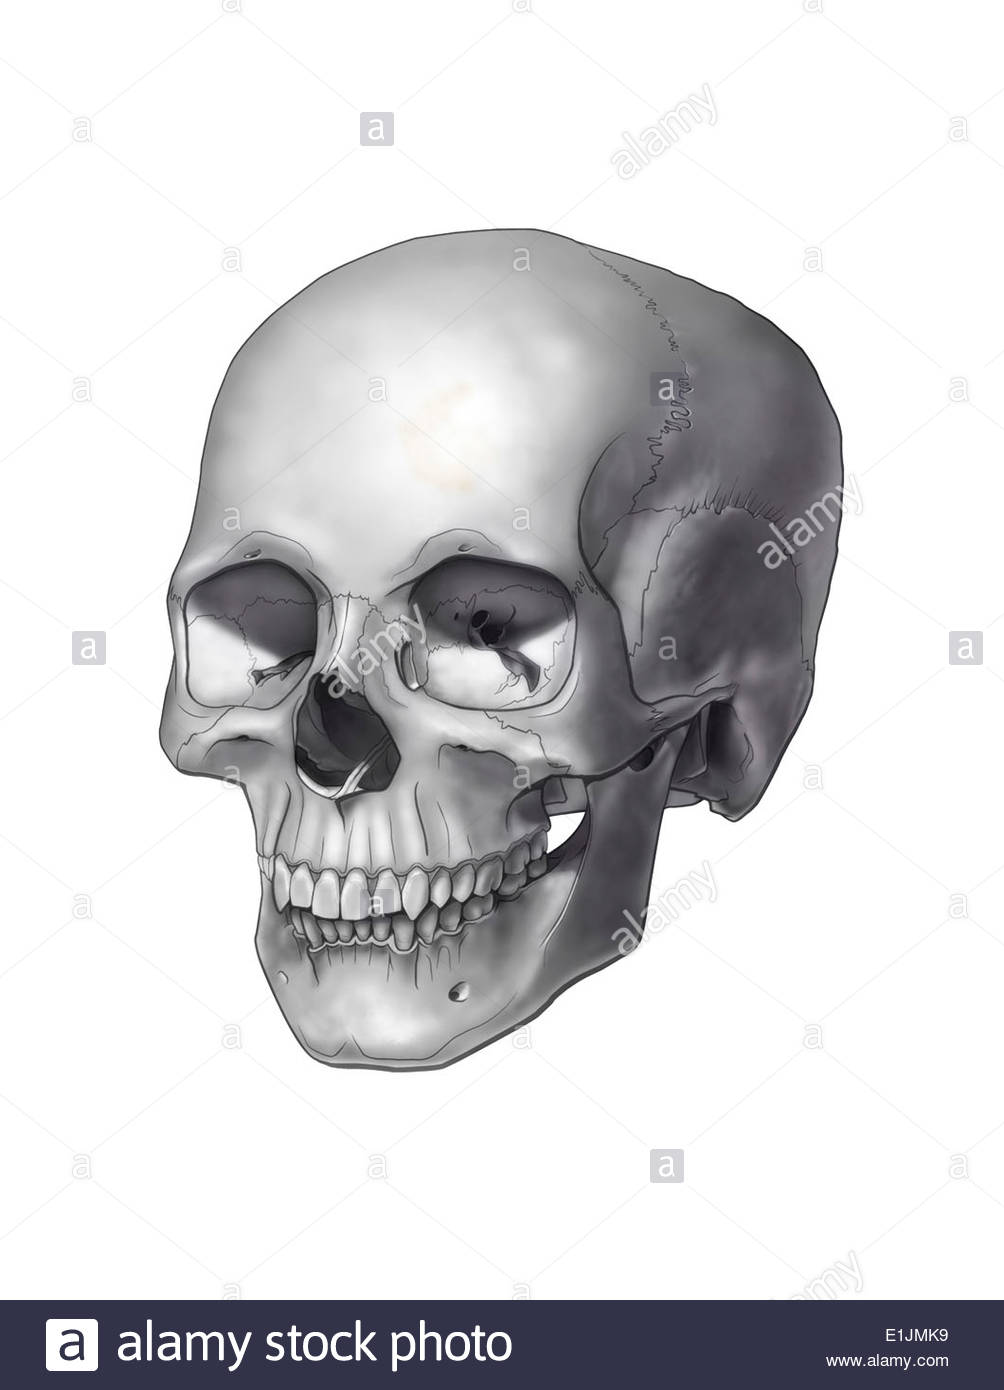 Black and white illustration of a human skull. - Stock Image